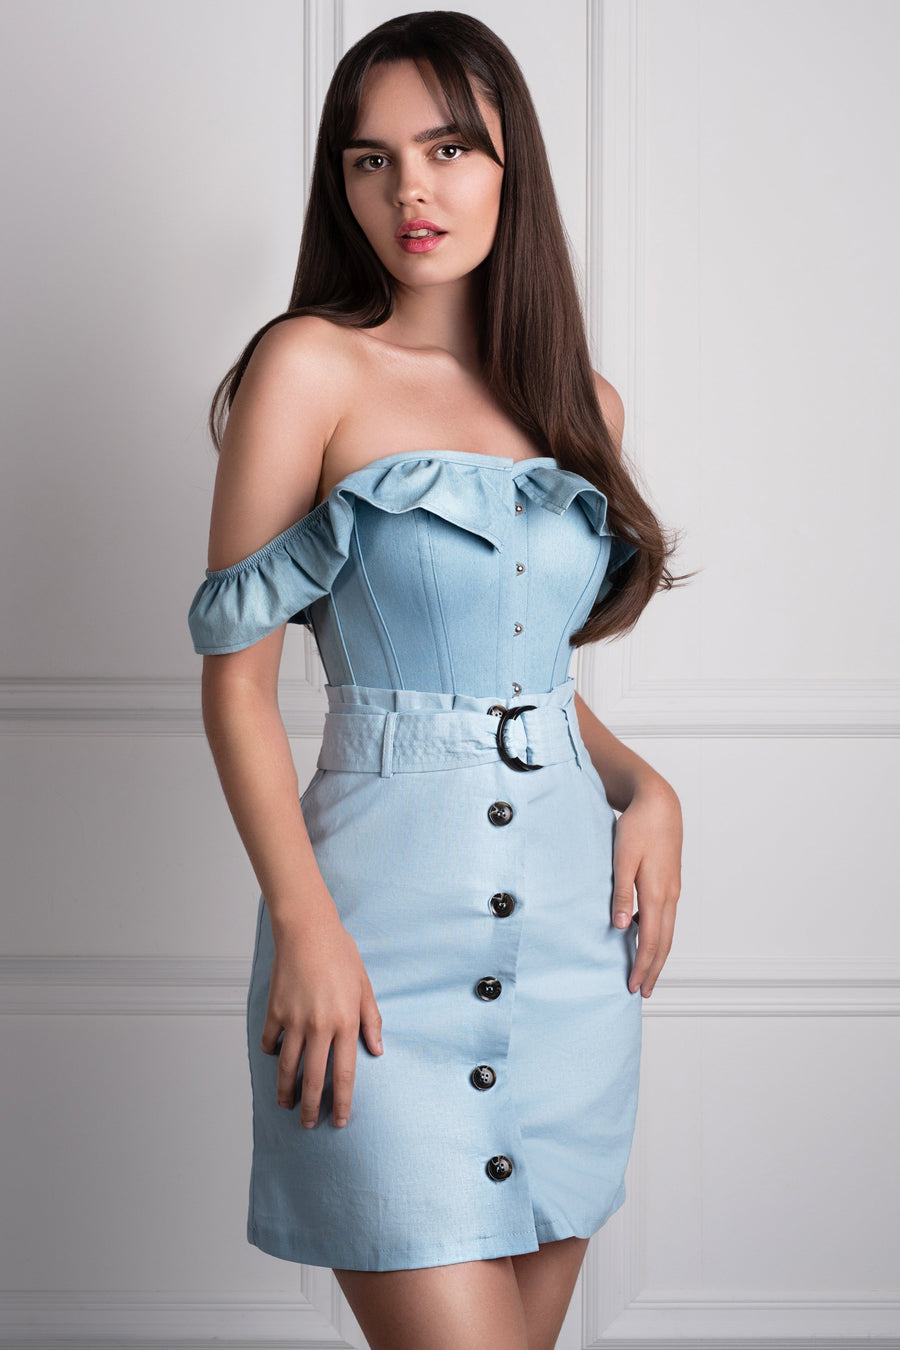 9988401decd540 Denim Straight Bustline Corset Top With Off The Shoulder Sleeves ...